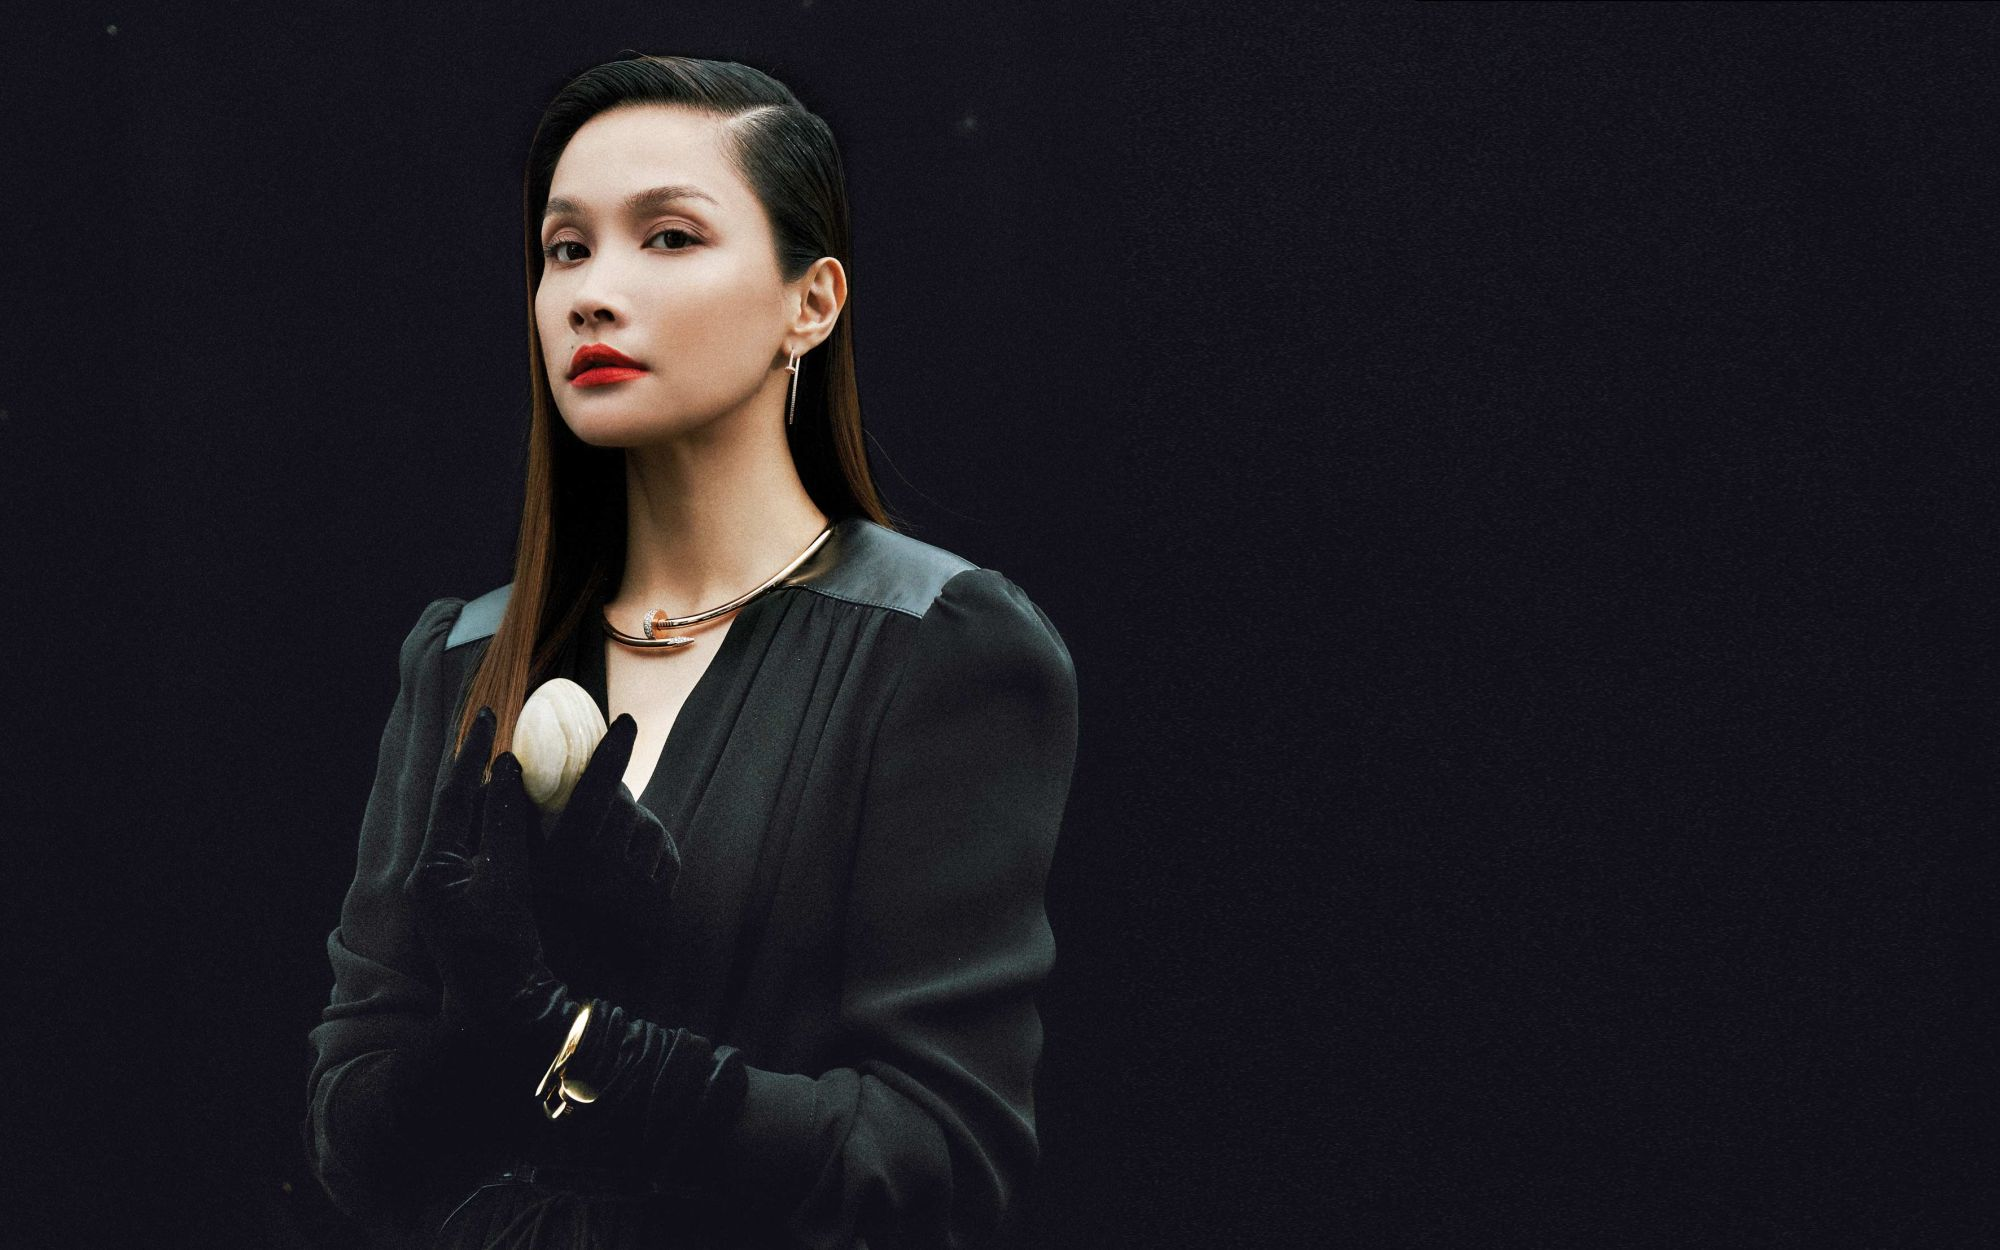 Cover Story: Malaysia Tatler's Most Stylish Woman 2019 Is Style Superstar, Scha Alyahya